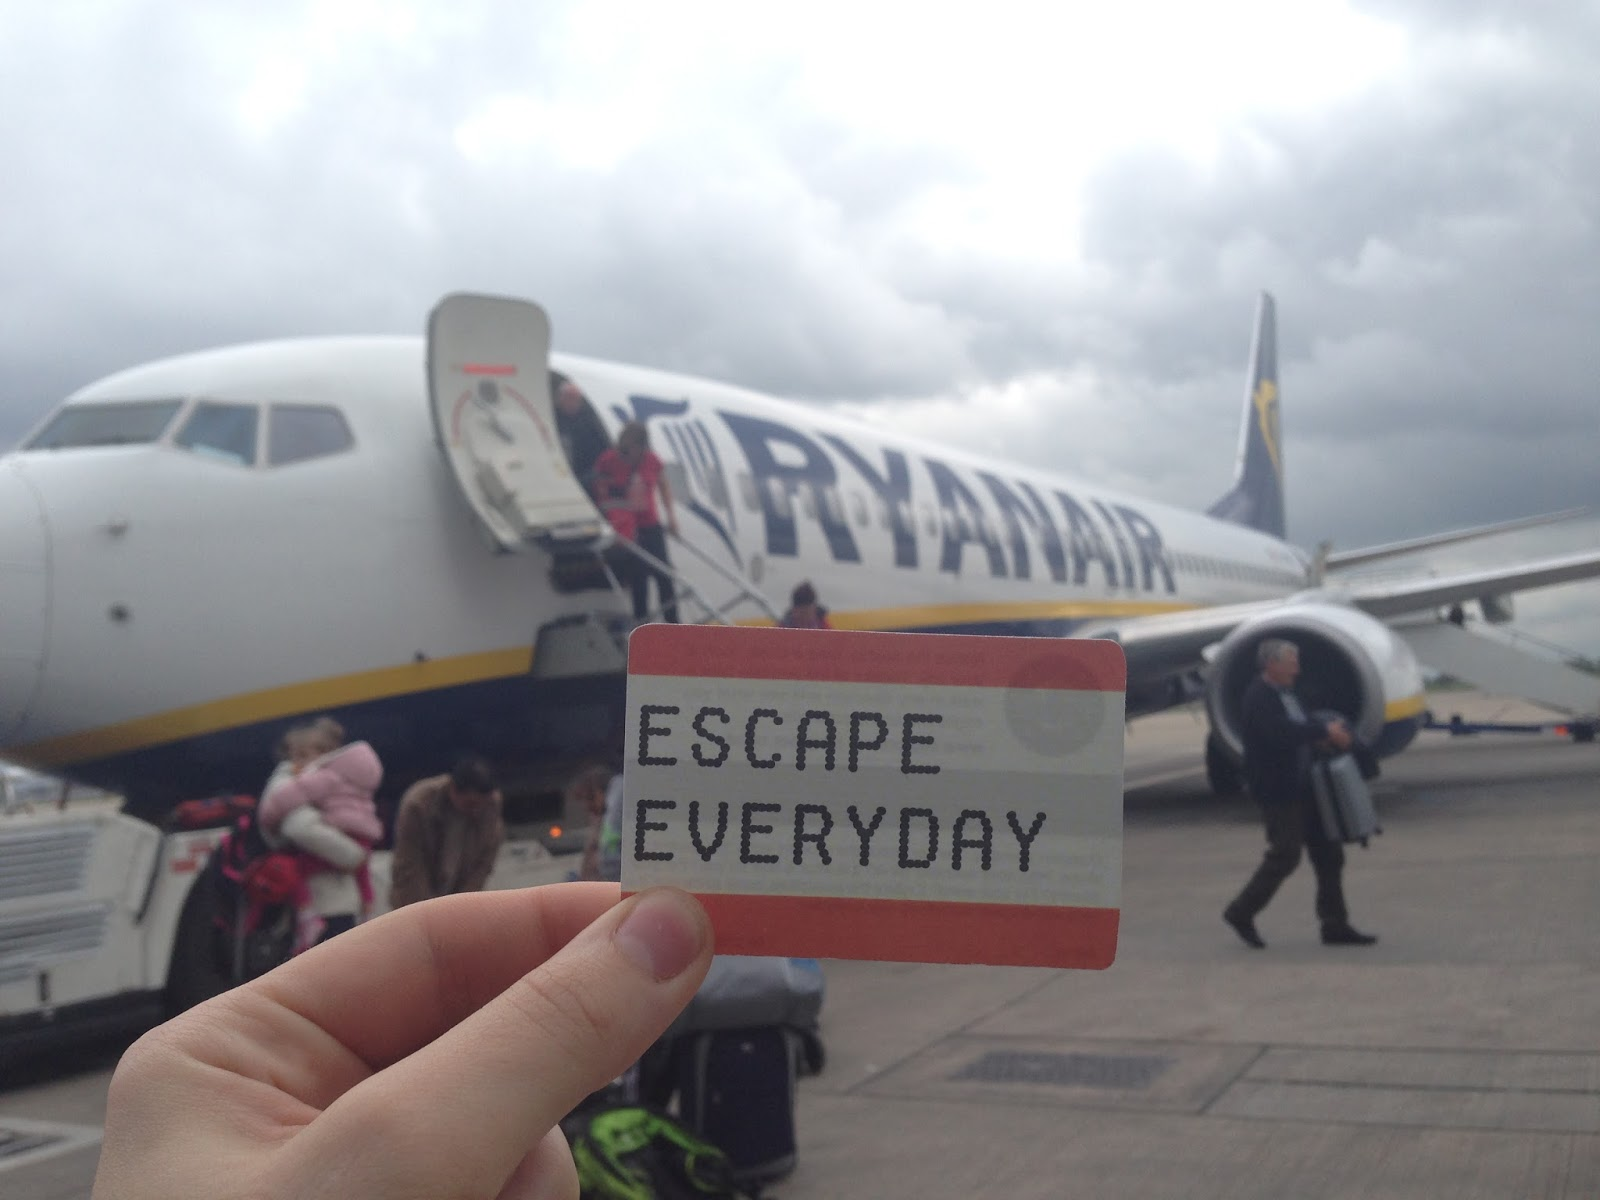 what is ryanair like, ryanair review, recommend ryanair, how to avoid ryanair fees, flying with ryanair, budget airlines, flying in europe, travelling in europe, traveling in europe